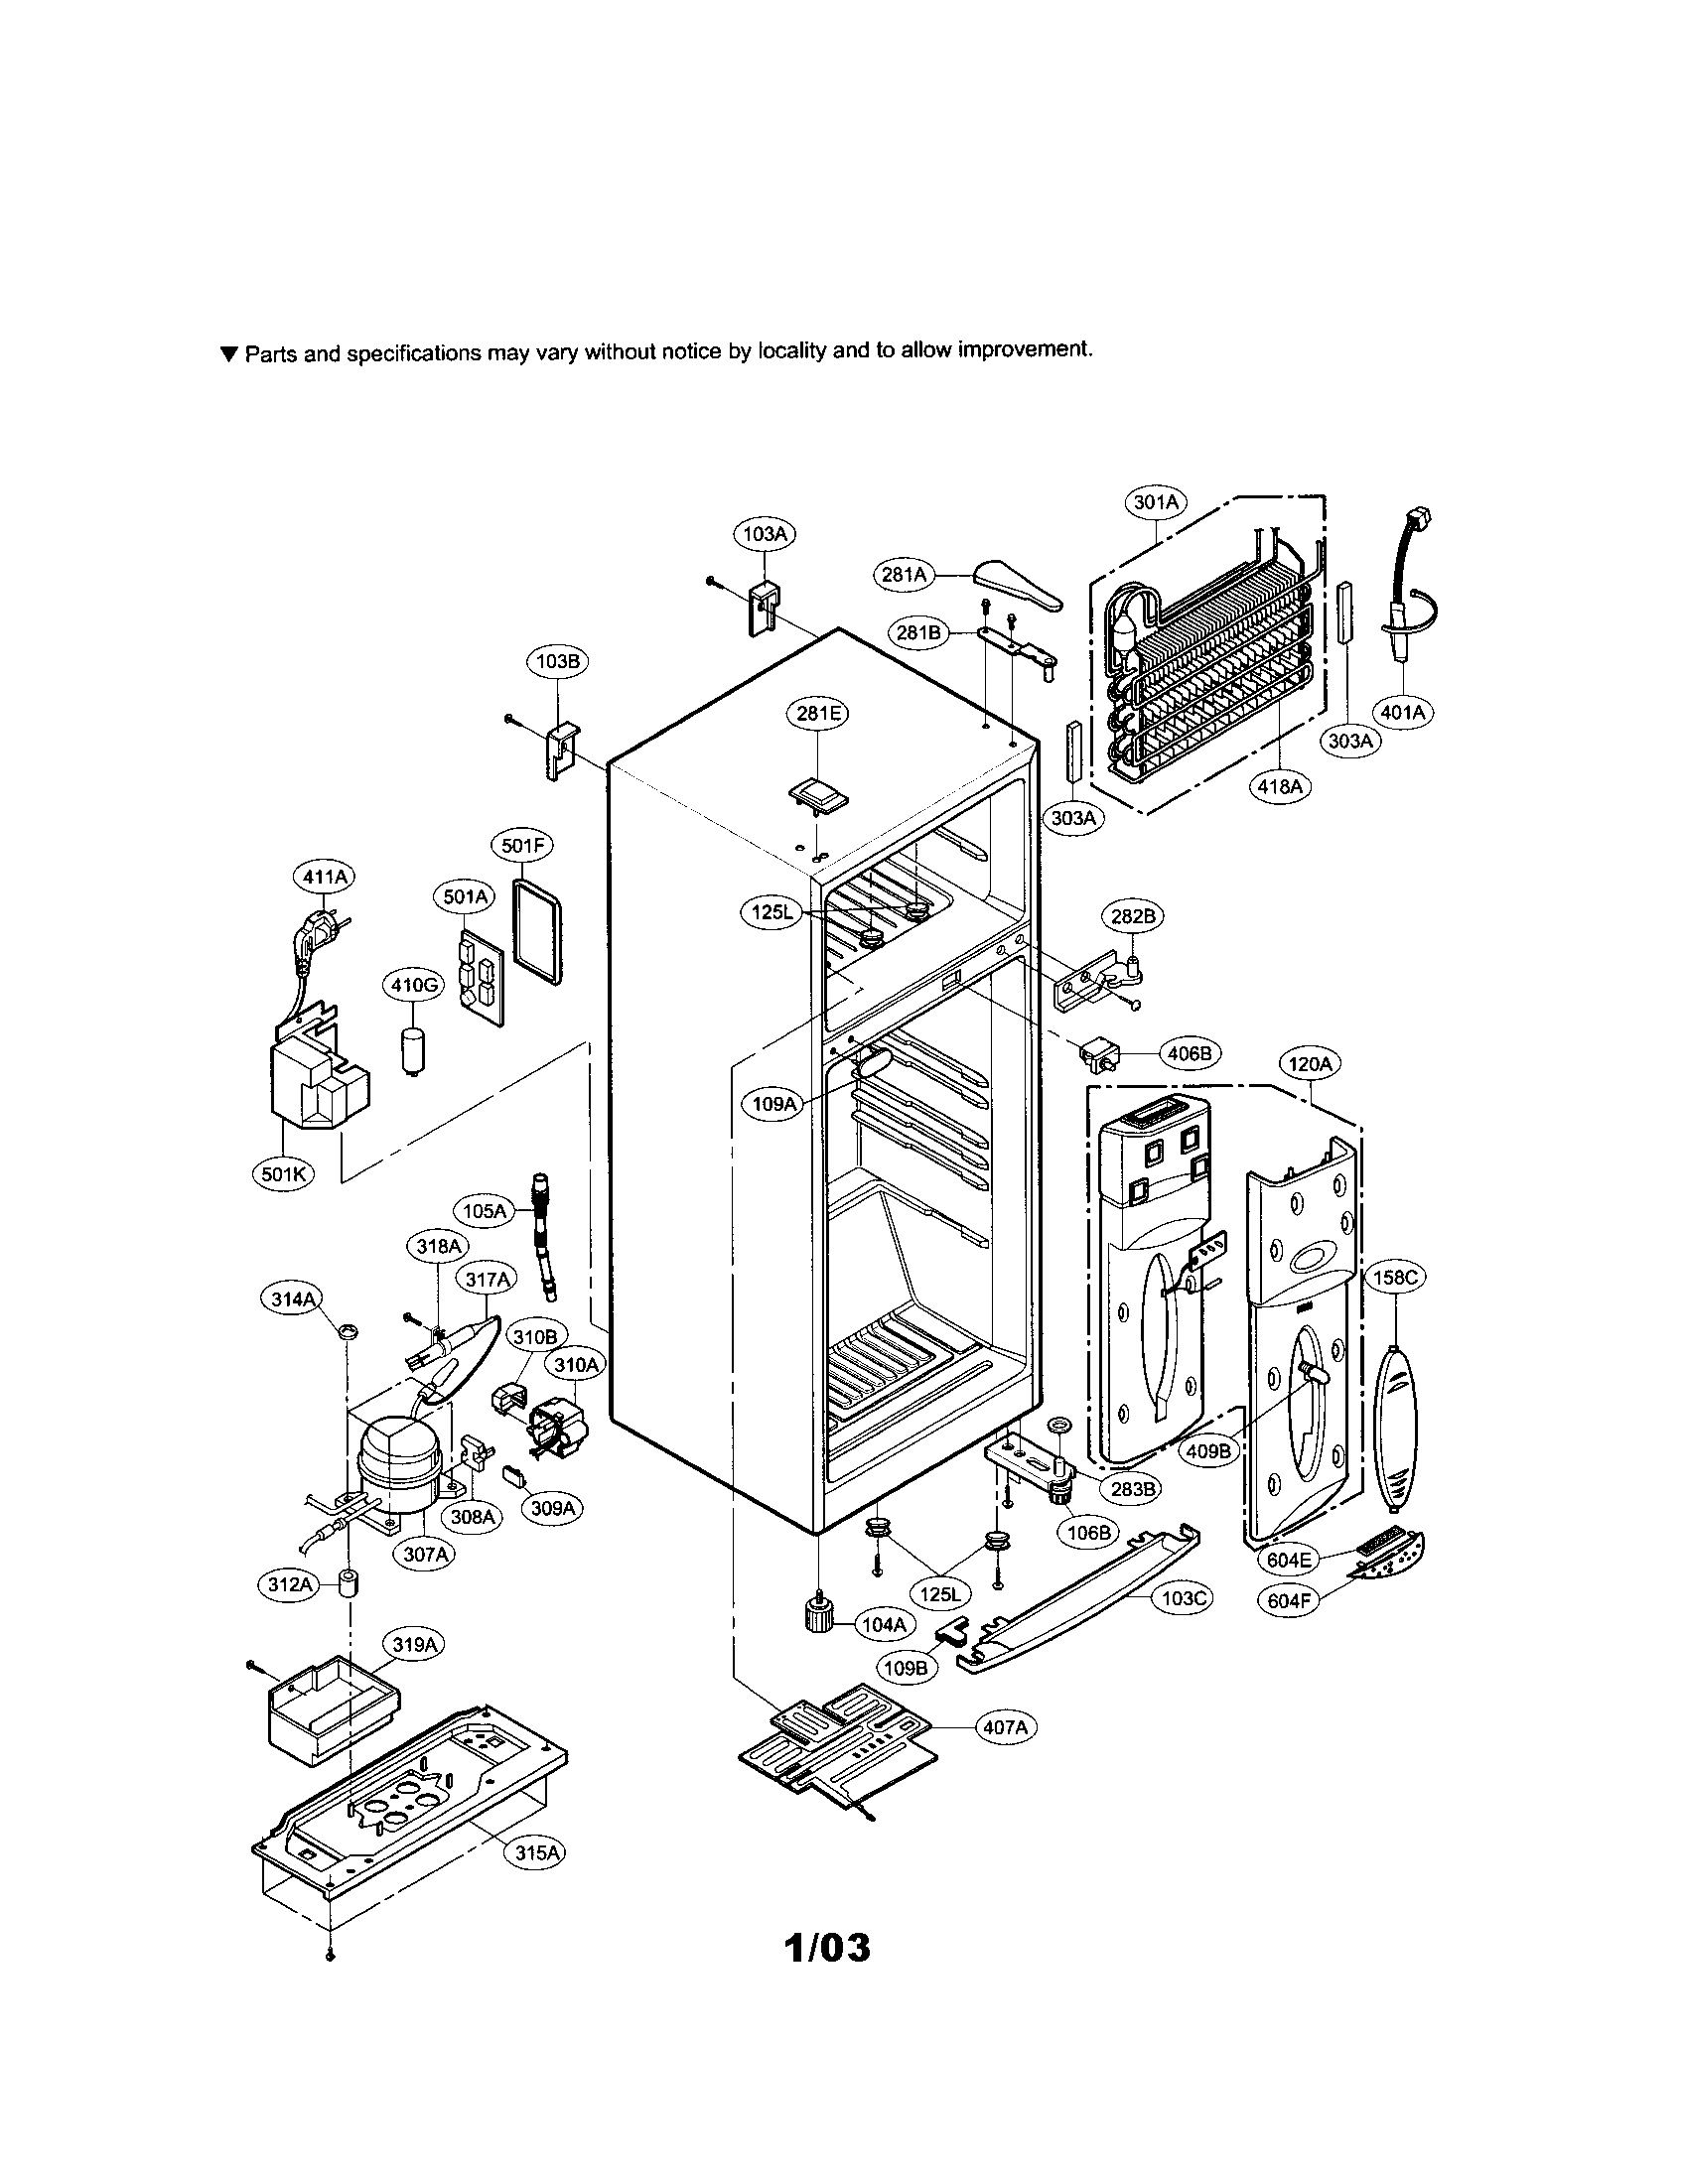 CABINET Diagram & Parts List for Model lrtp0931w LG-Parts